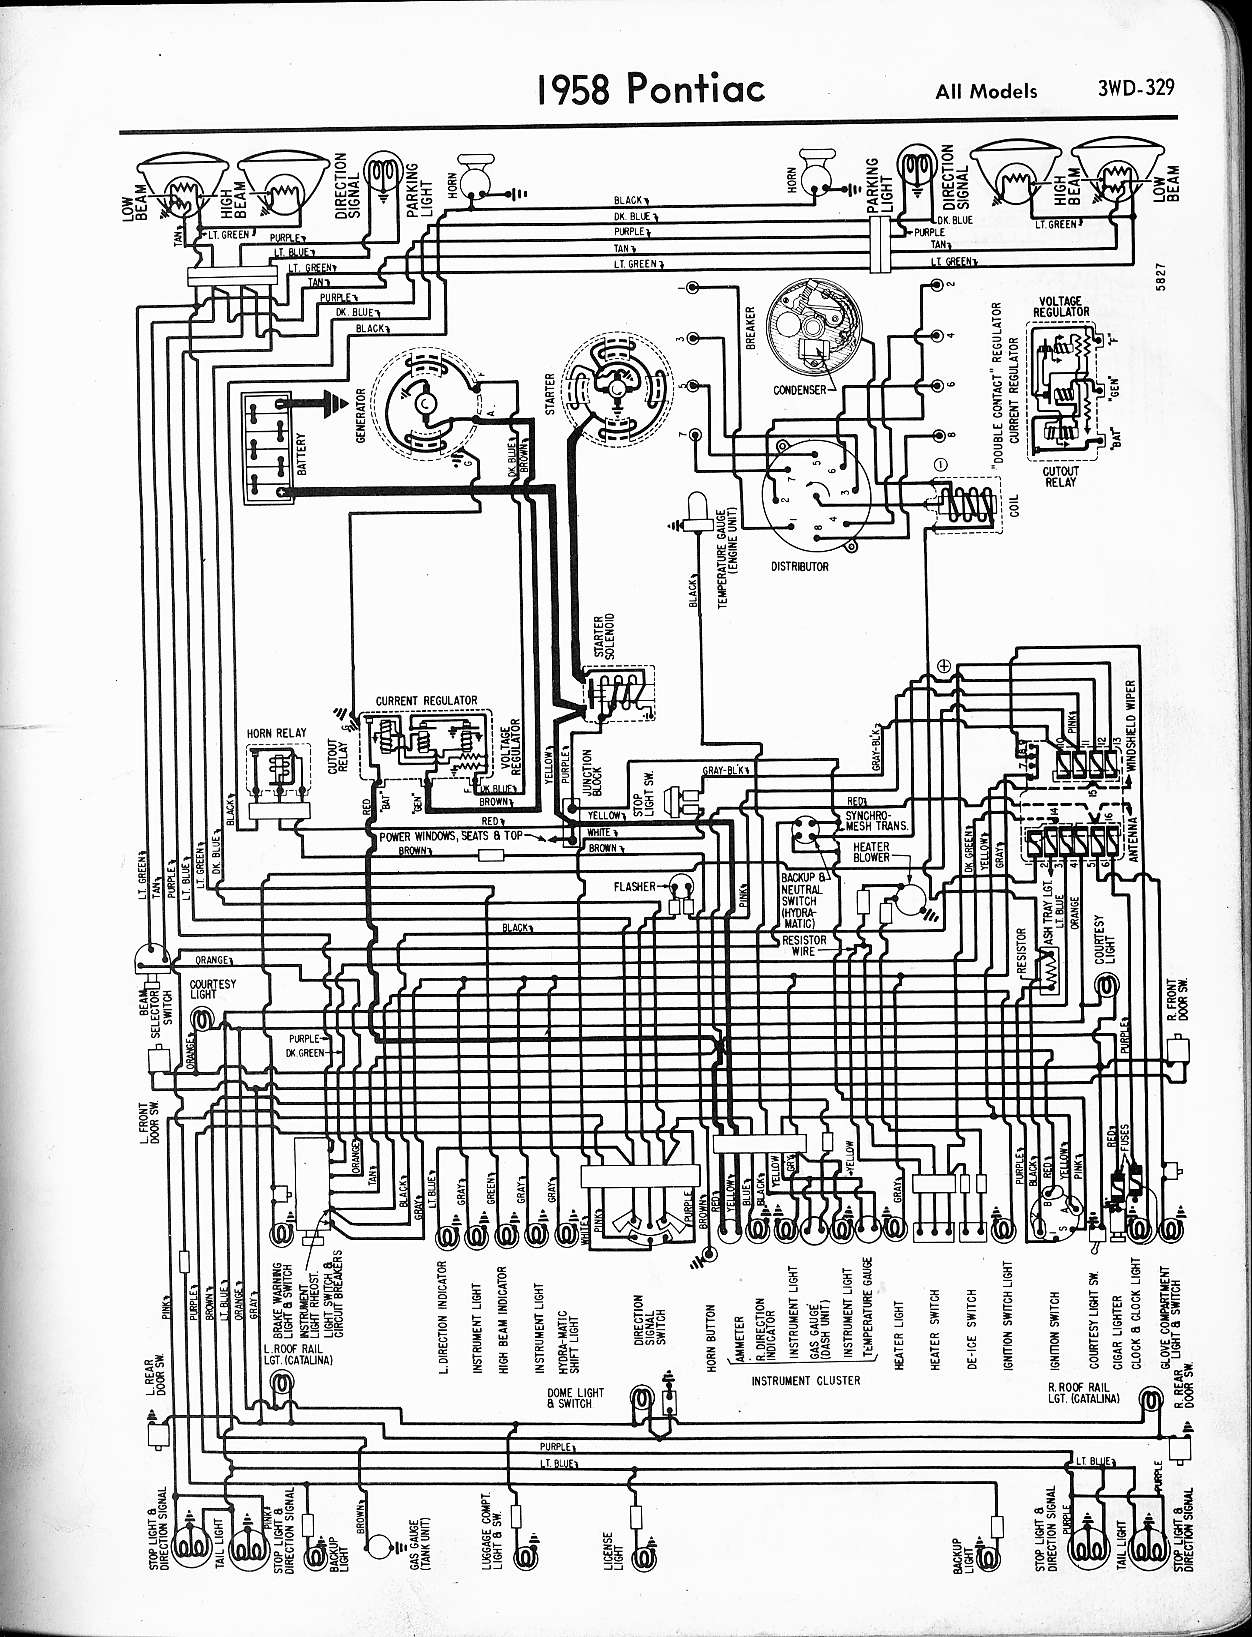 69 Pontiac Firebird Ignition Wiring Diagram Worksheet And 1971 Chevrolet Camaro 1958 Schematics Rh Mychampagnedaze Com 1972 1973 Rear Defroster